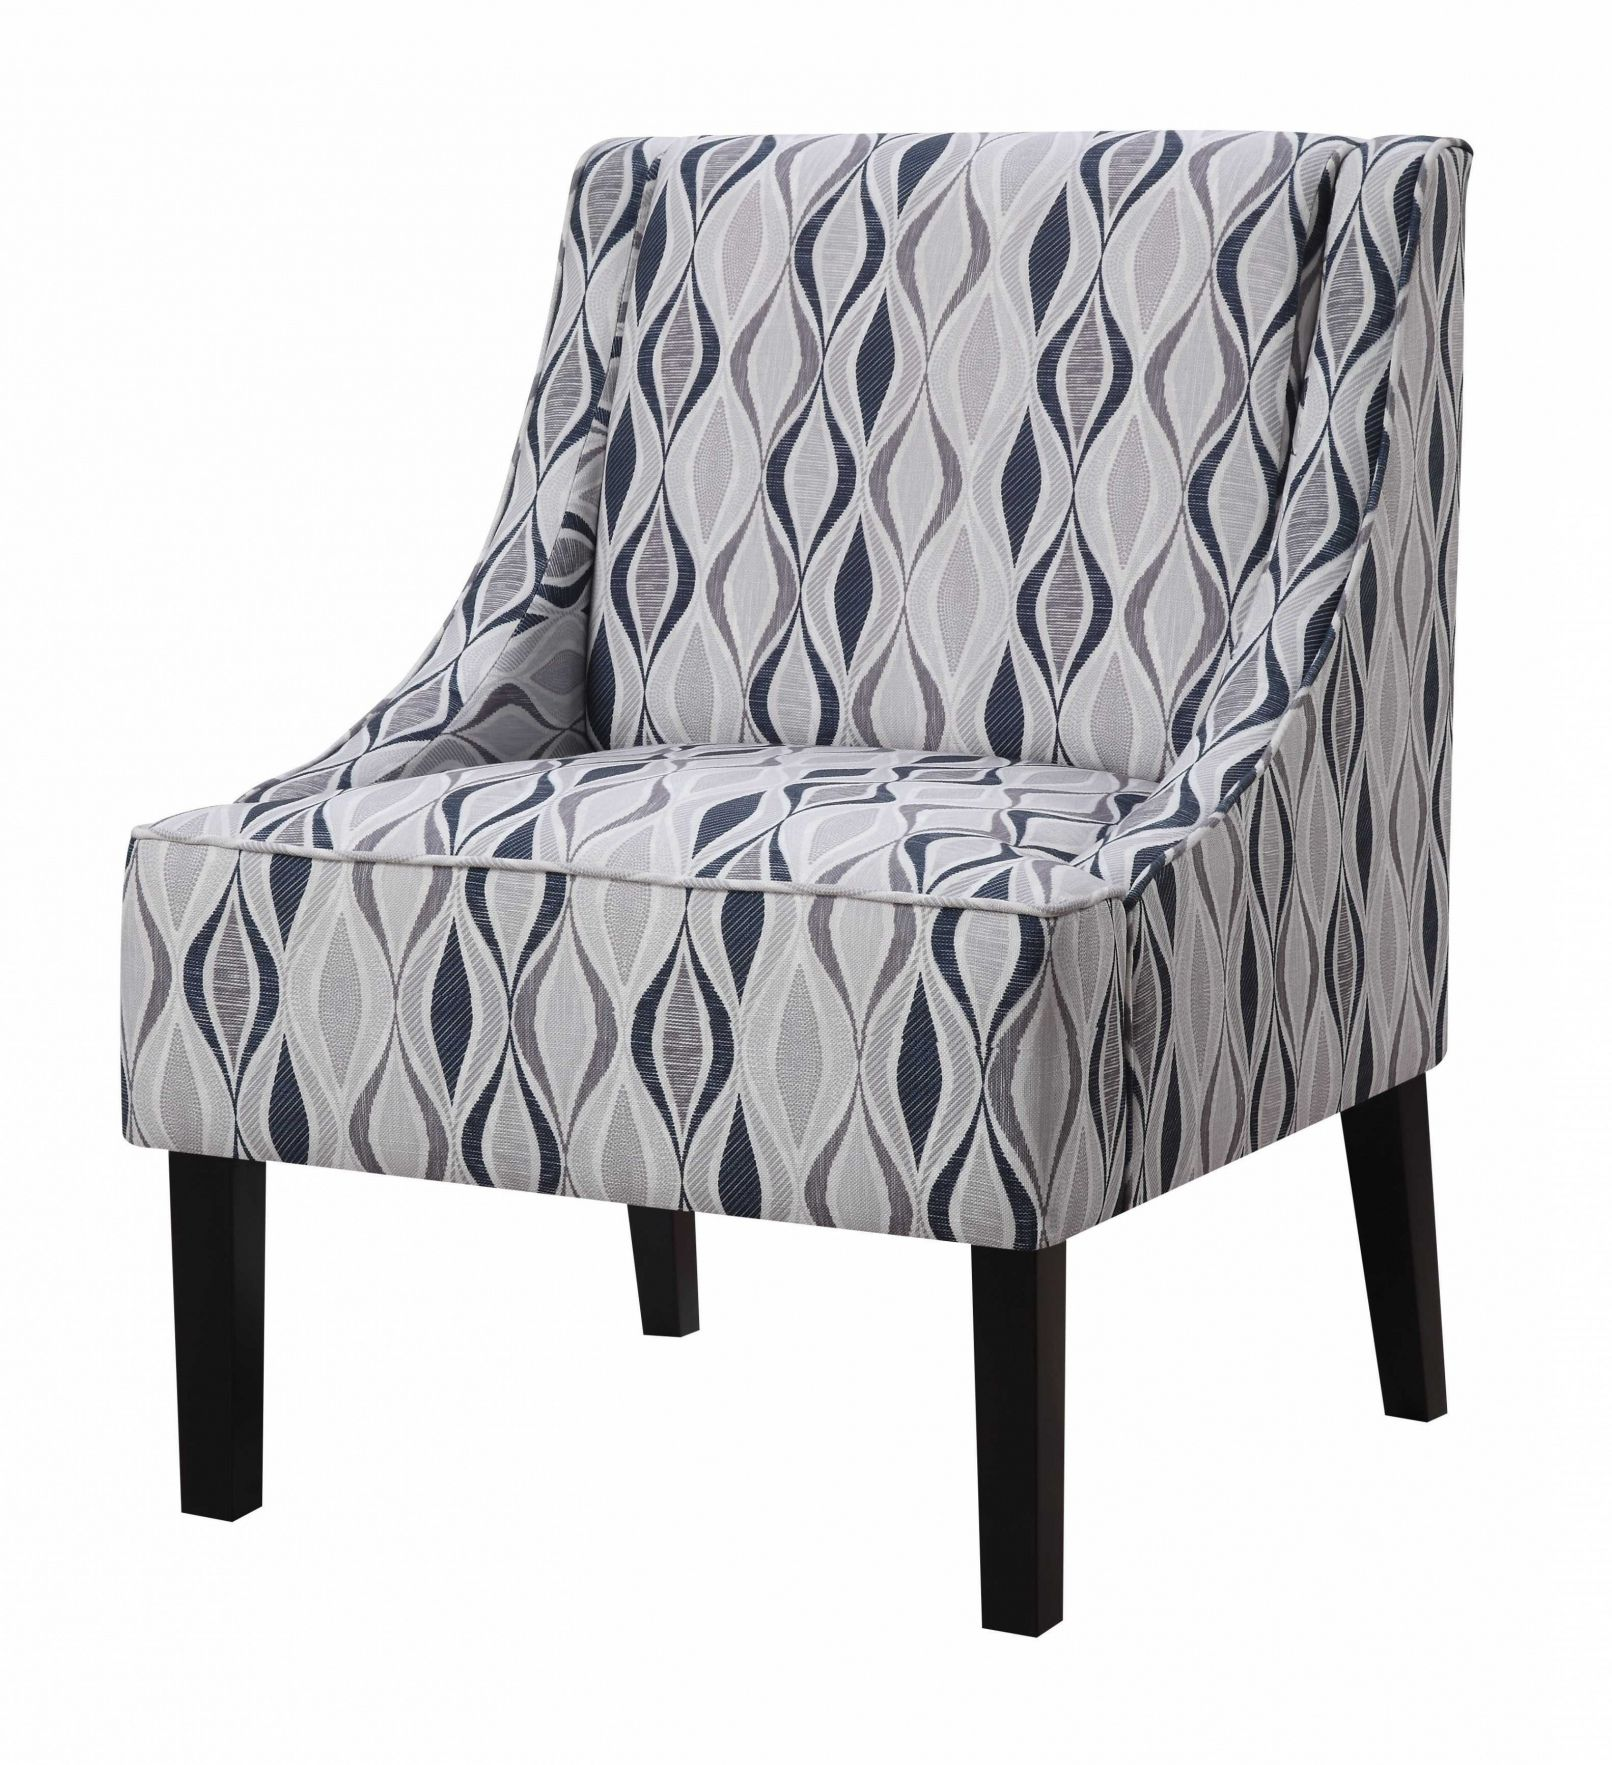 70+ Blue And White Striped Accent Chair   Best Modern Furniture Check More  At Http